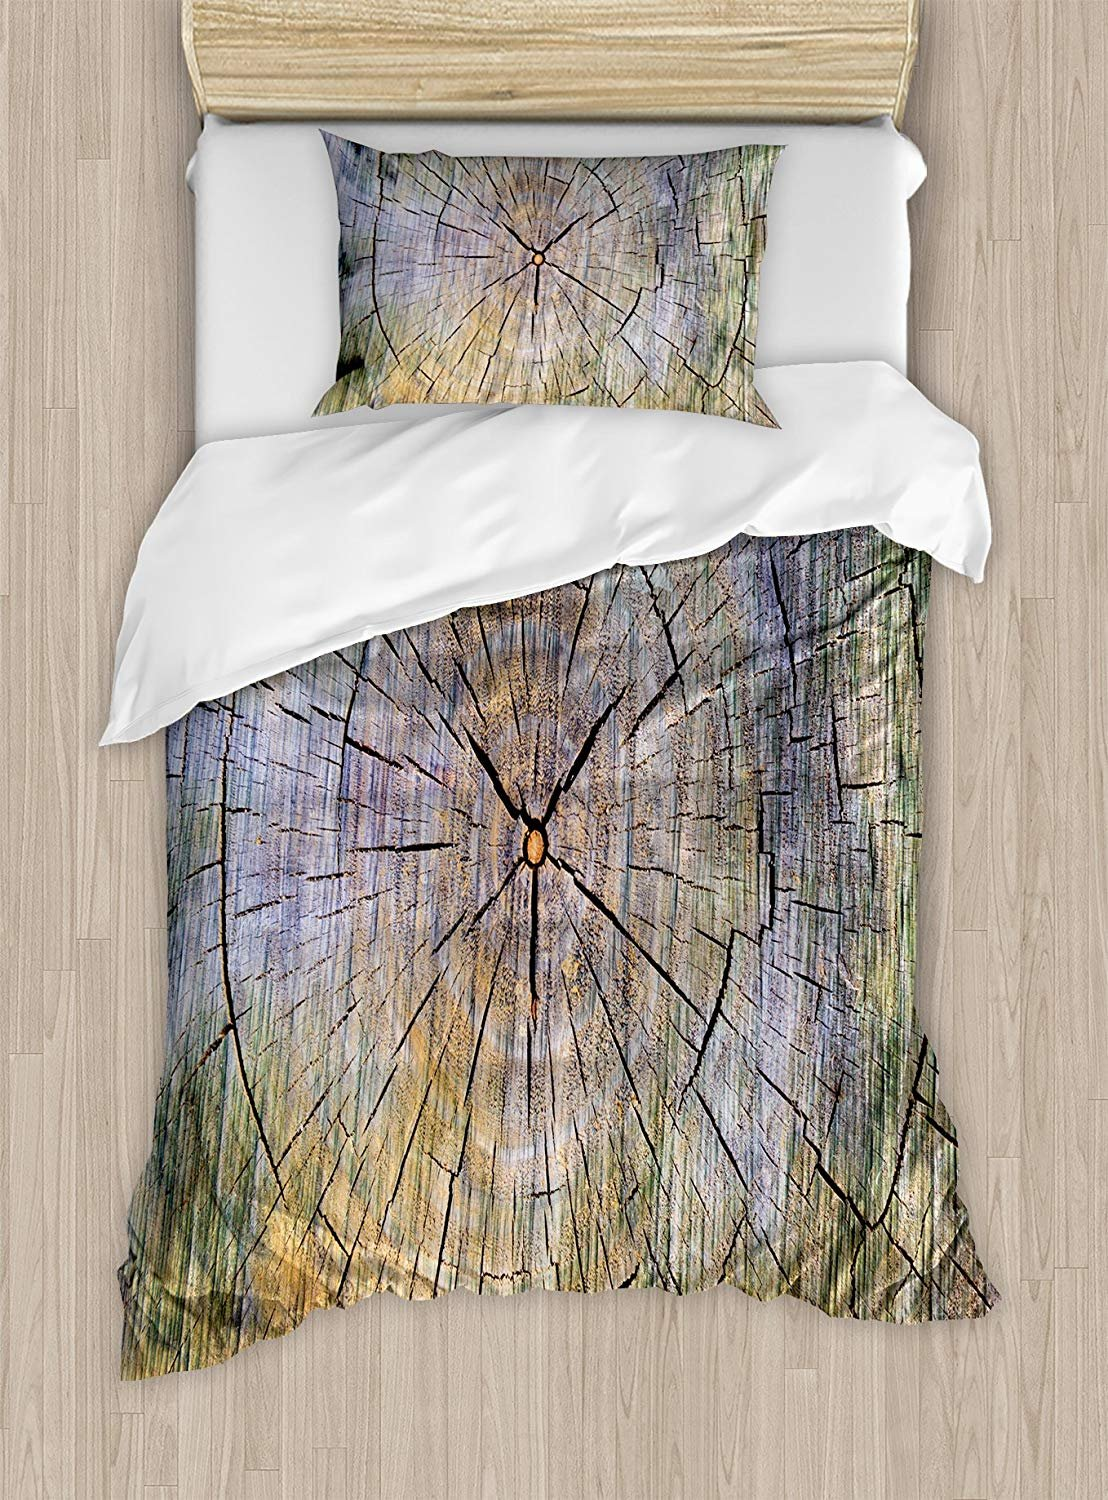 Fantasy Star Twin Bedding Set,Rustic Duvet Cover Set,Annual Rings of Wood Growth Aging Theme Dirty Inner Tree Body Branch Whorls Width Design,Include 1 Flat Sheet 1 Duvet Cover and 2 Pillow Cases